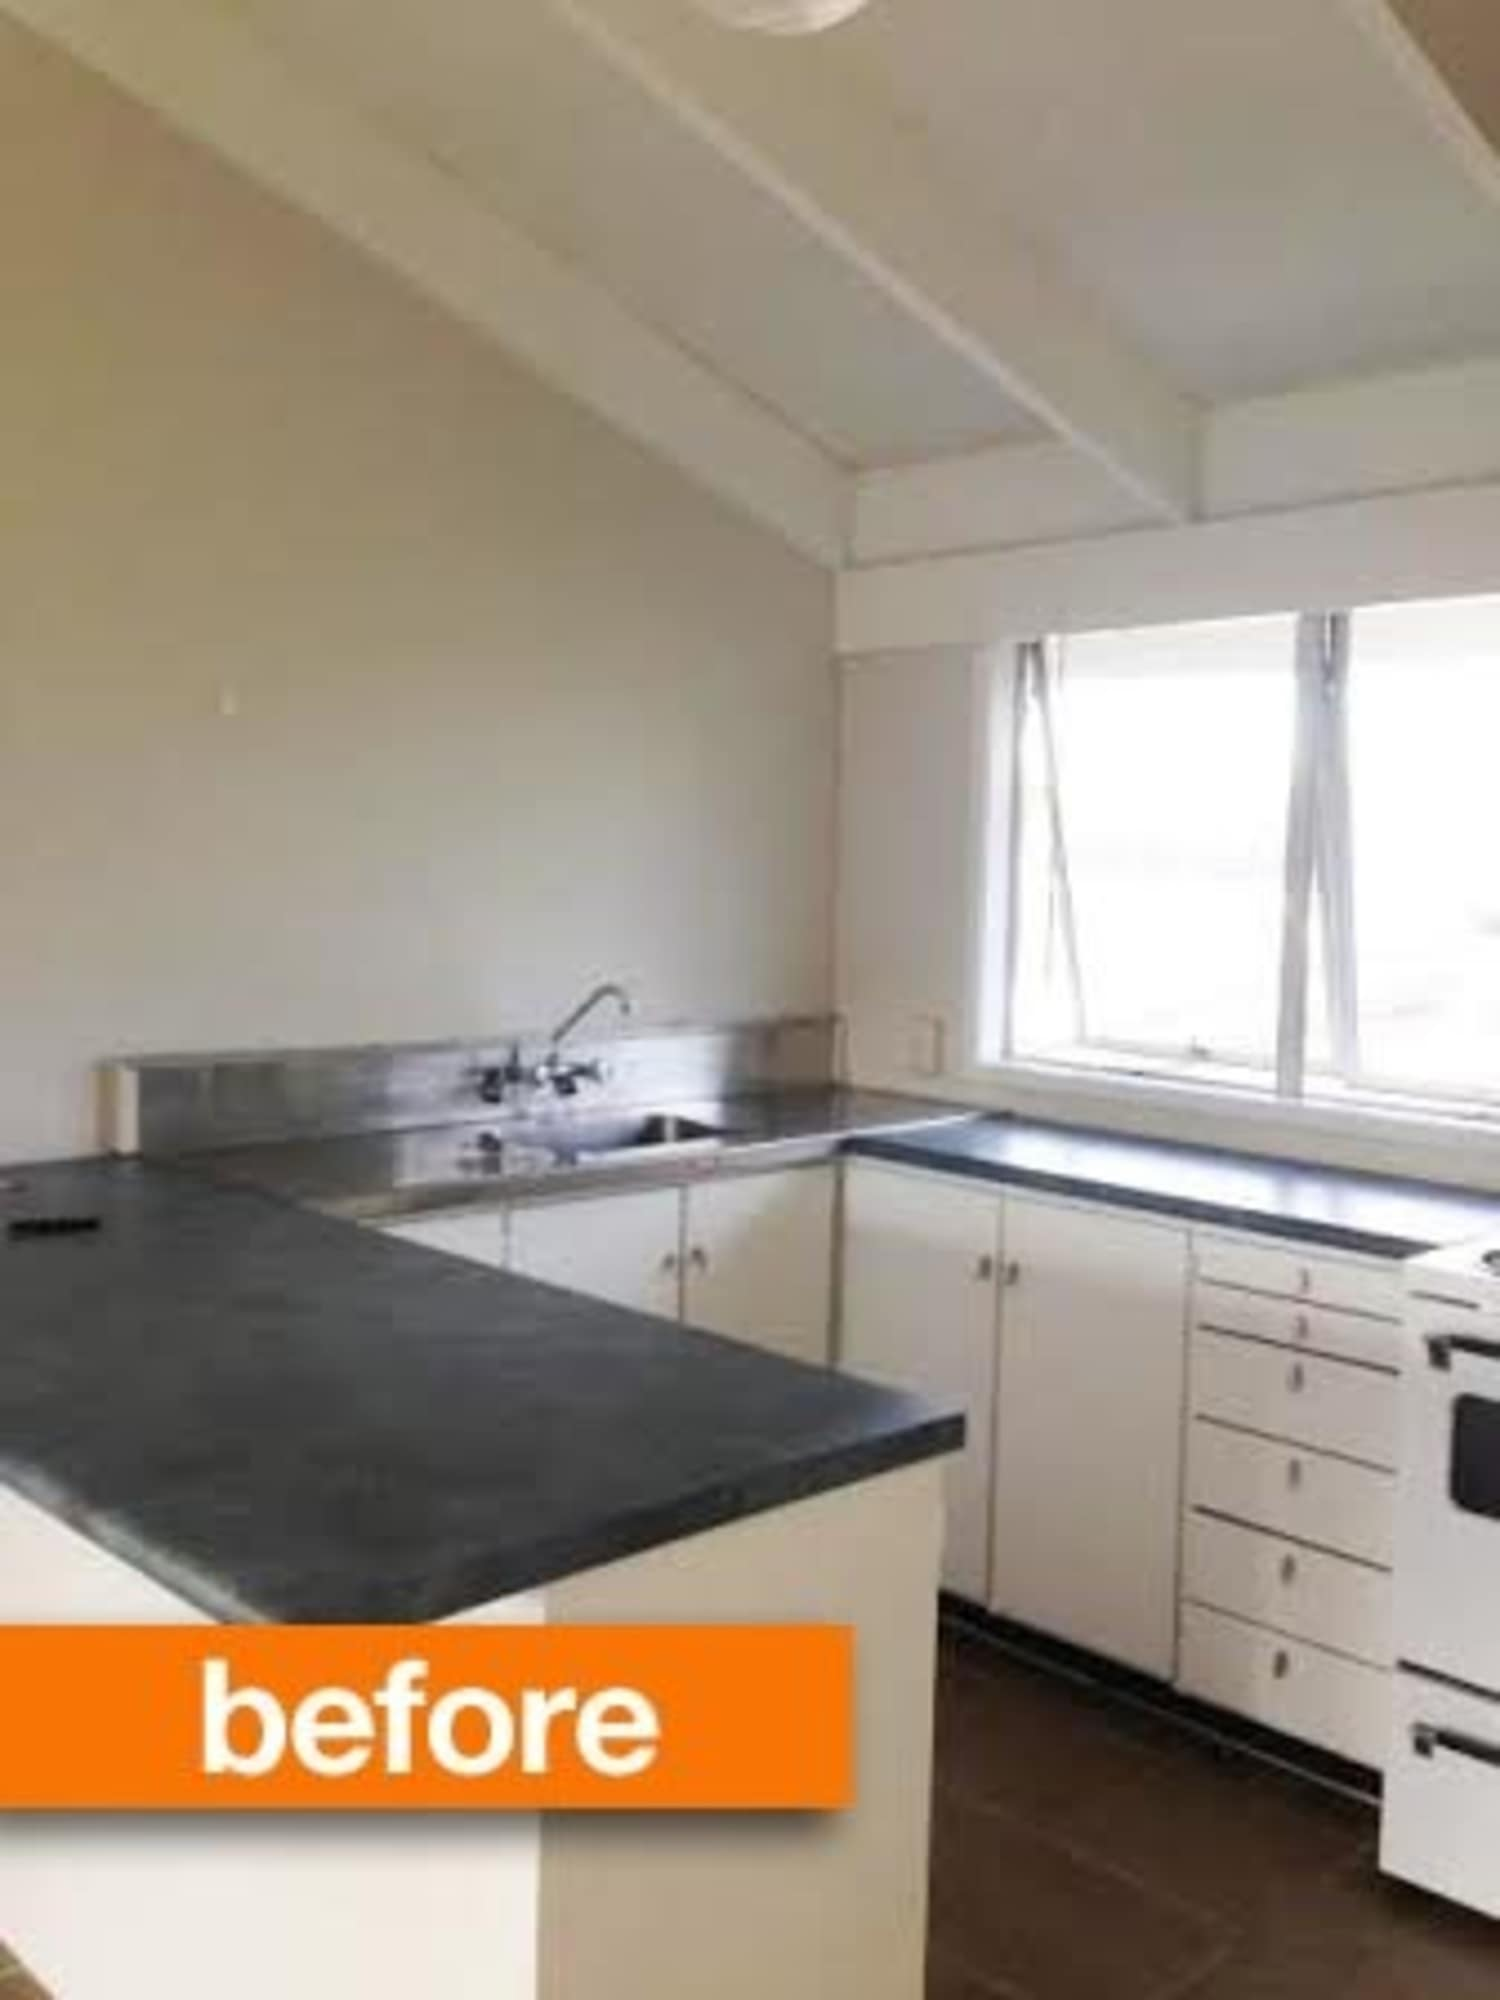 Before & After: Rental Kitchen Gets a Stylish DIY Upgrade For Under $50